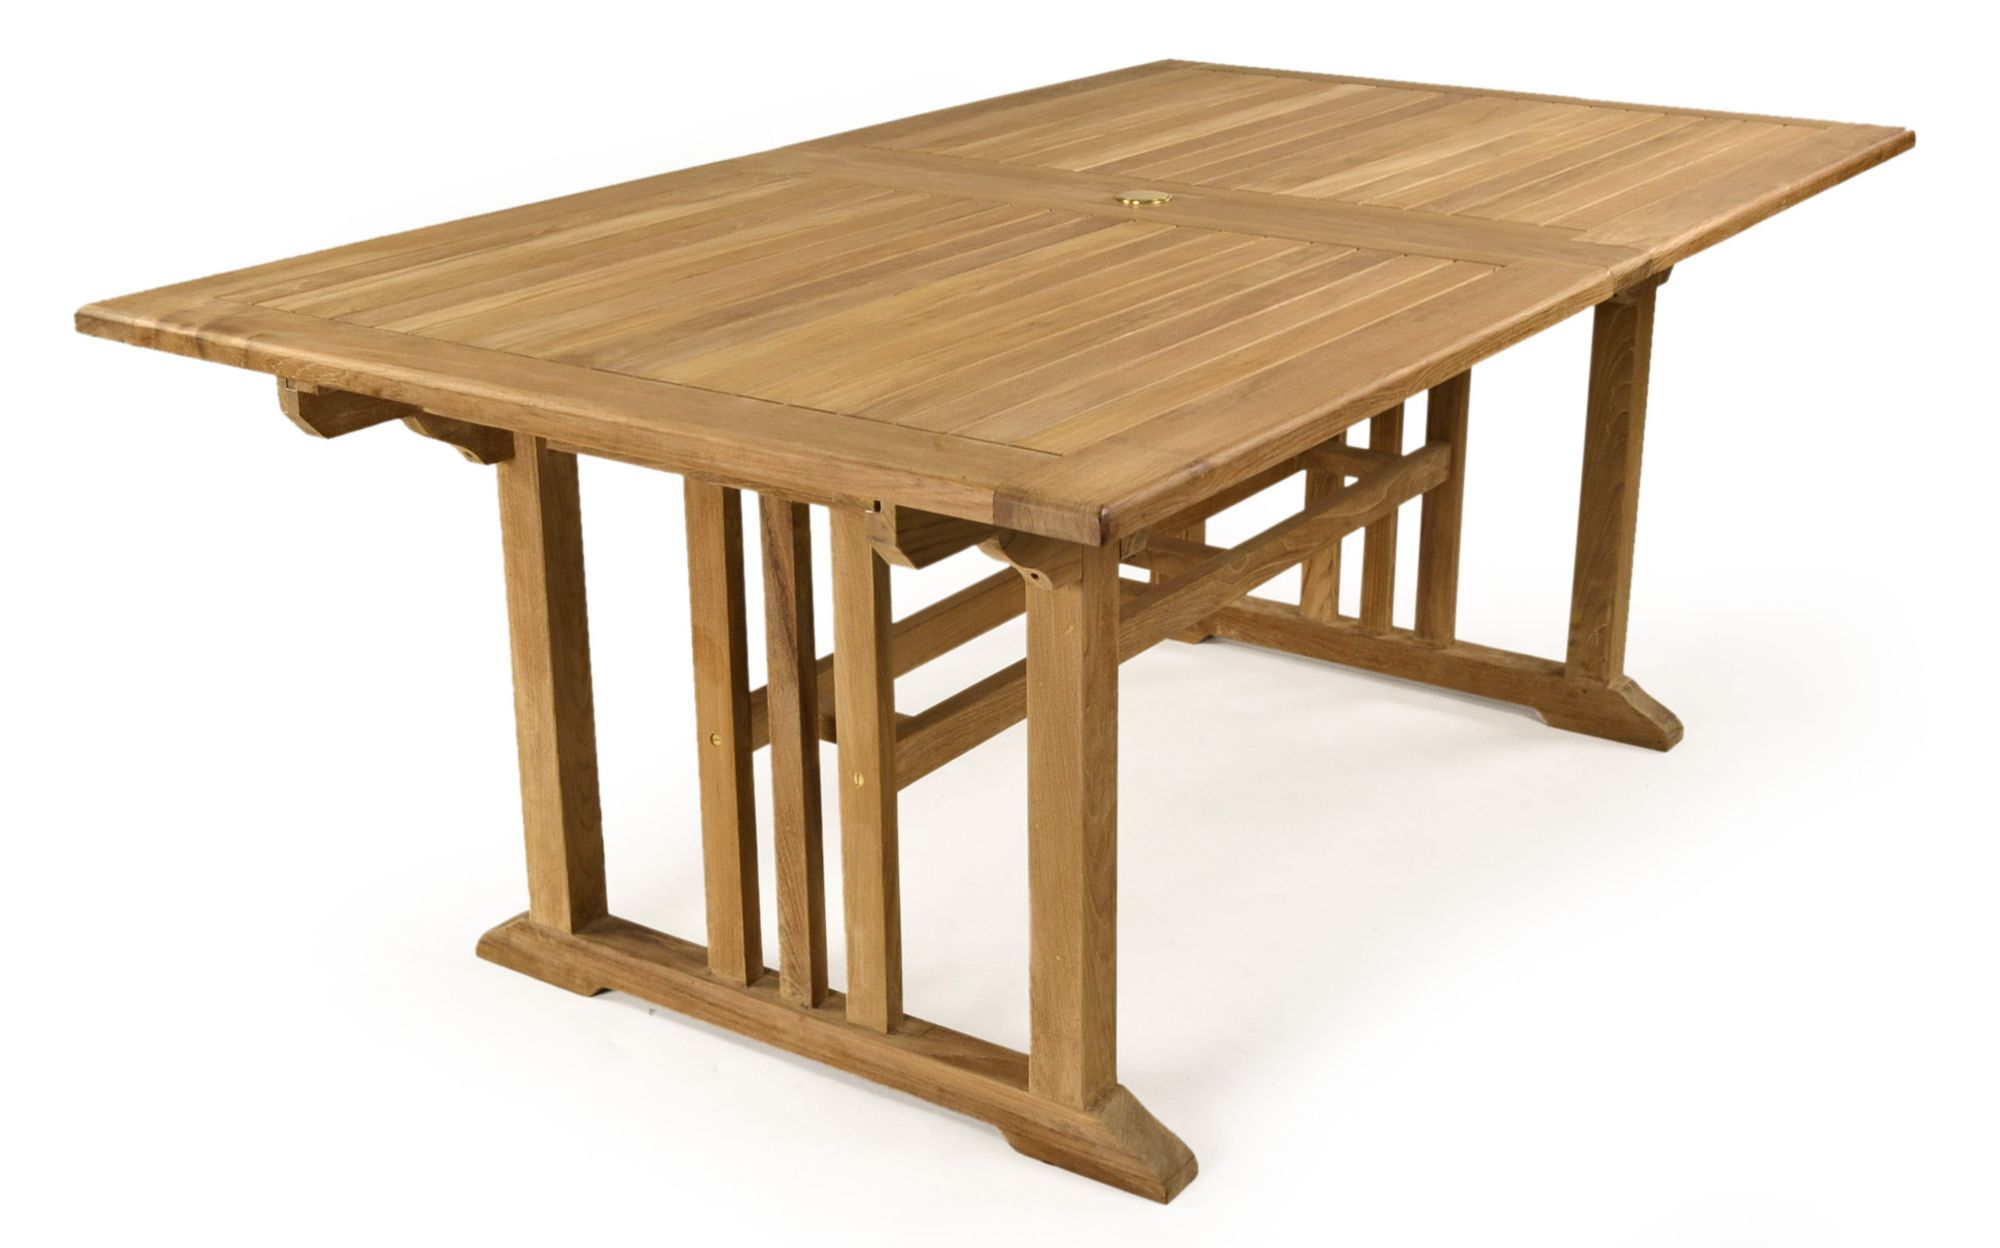 Extending Table 187 Tesco Extending Tables : 359 5295PI1000015MNwid2000amphei2000 from extendingtable.co.uk size 2000 x 2000 jpeg 150kB